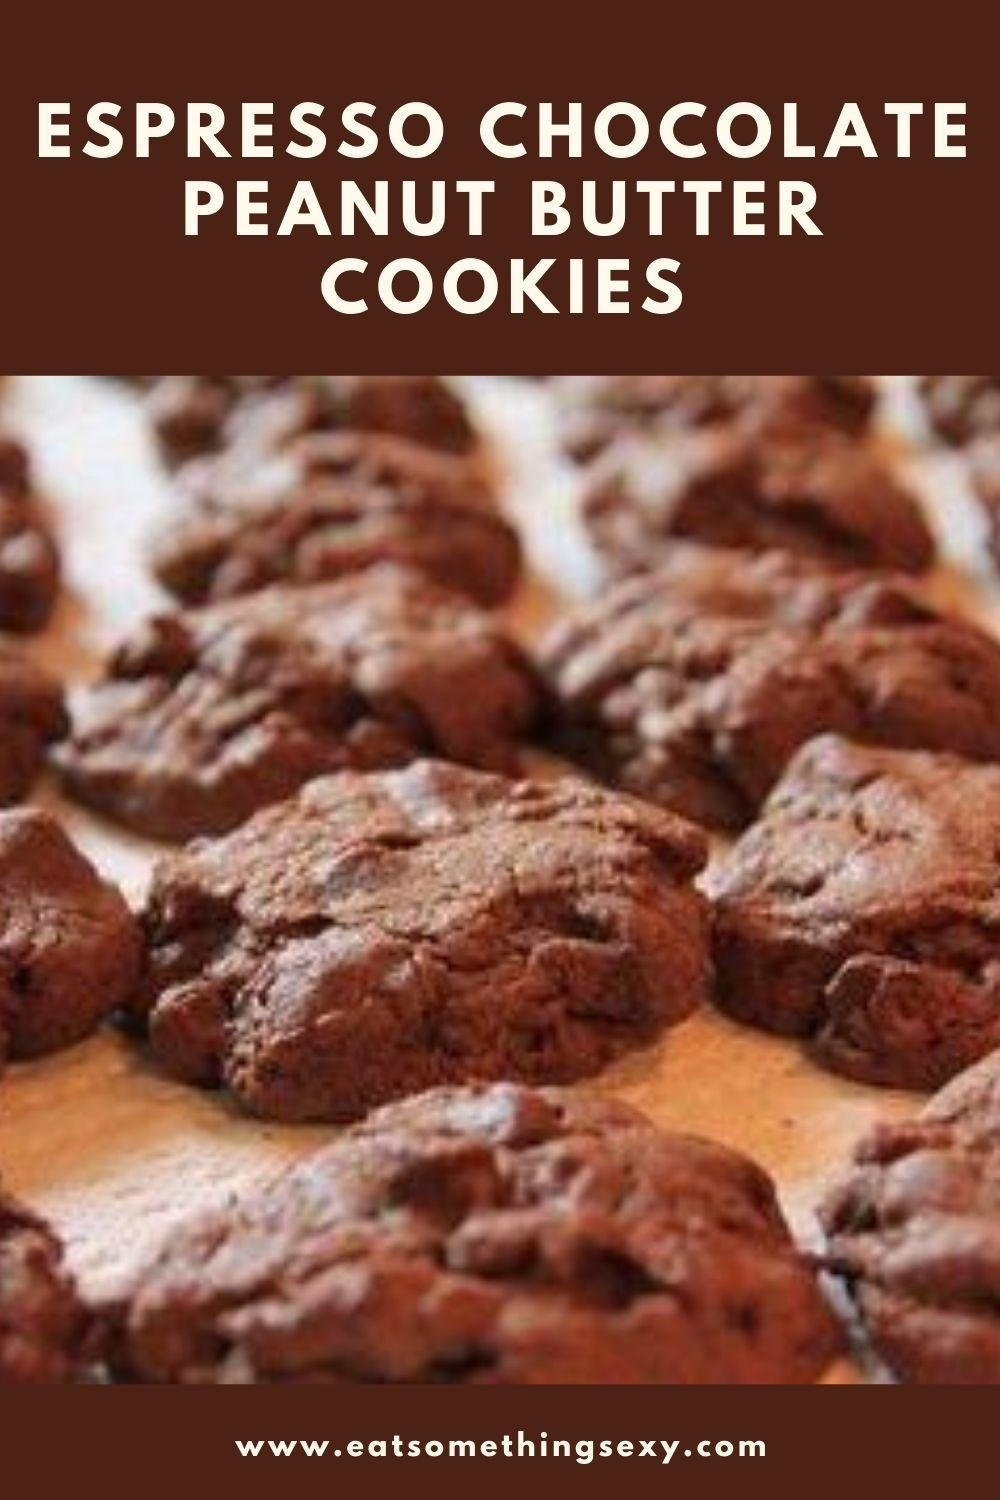 Espresso Chocolate peanut butter chip cookies graphic